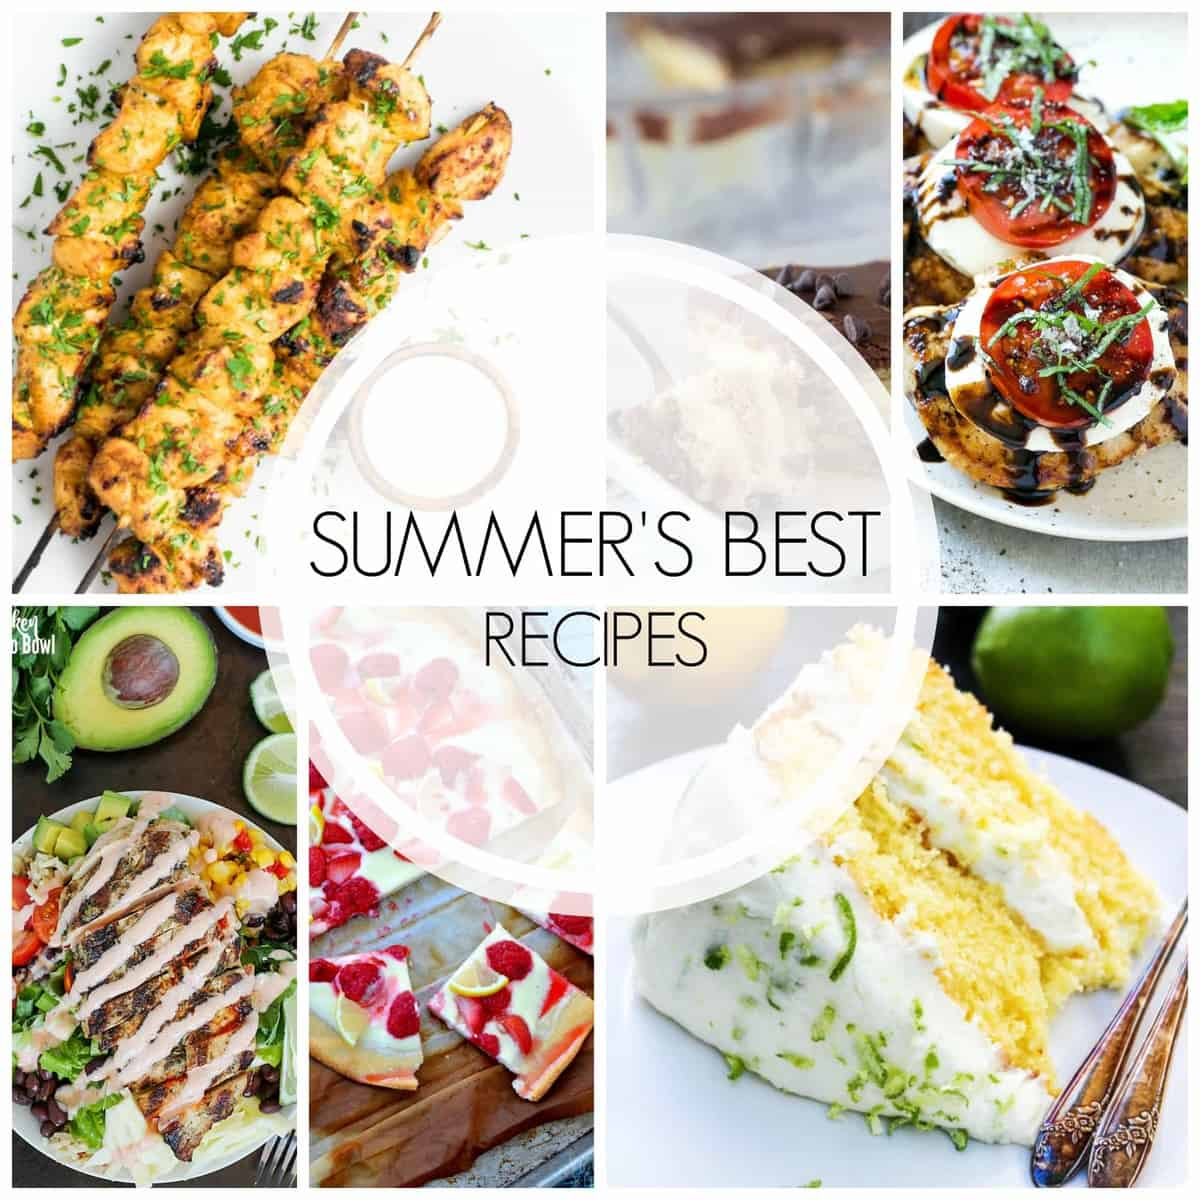 Soon, we will be spending hours in the kitchen cooking recipes for the months of holidays, but its not too late to still enjoy The Best Recipes of Summer!